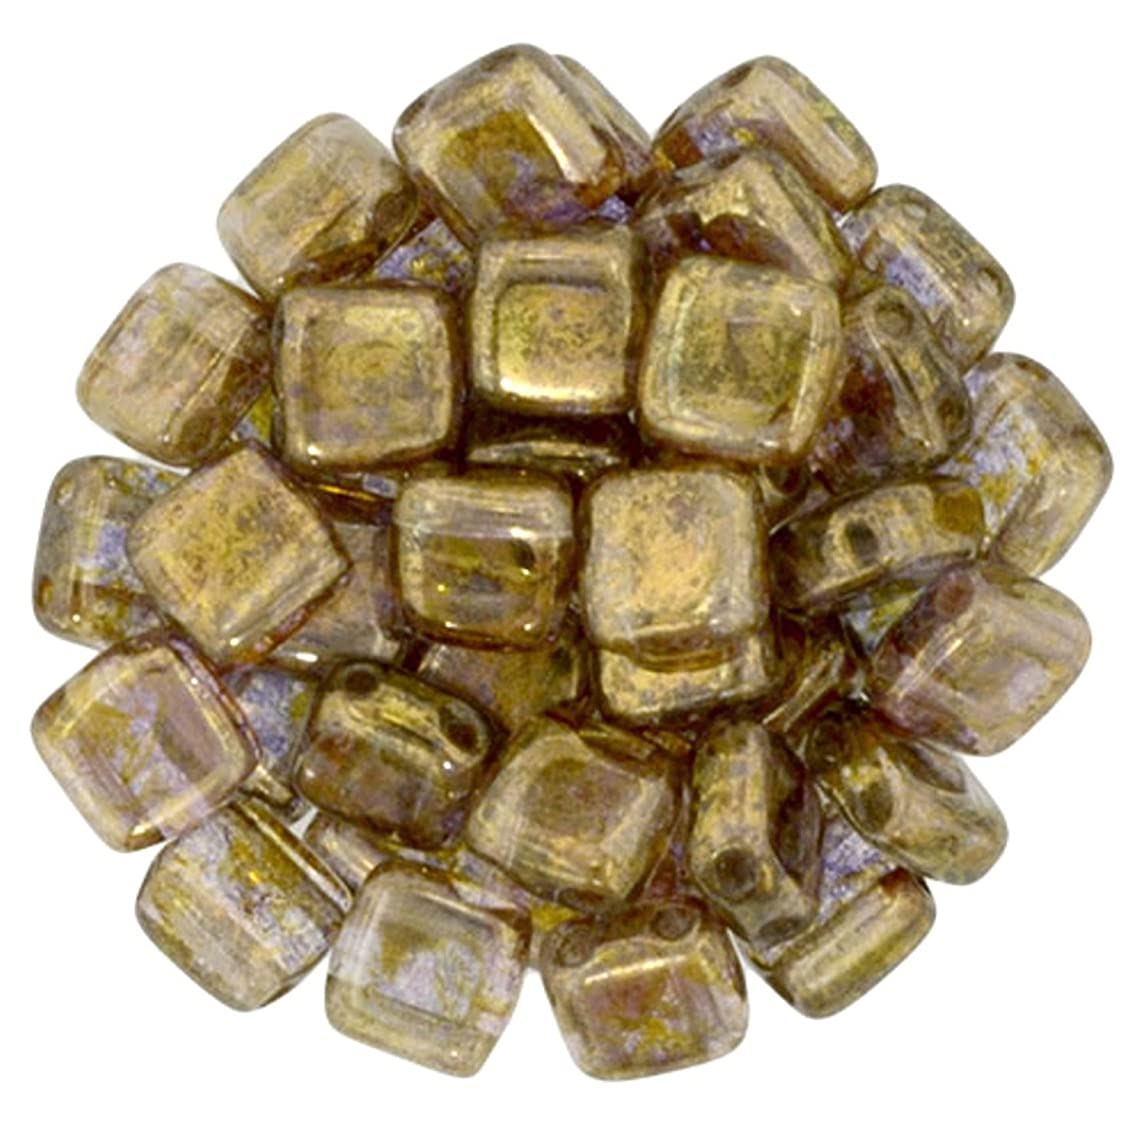 Czechmate 6mm Square Glass Czech Two Hole Tile Bead - Luster Transparent Gold/Sm.Topaz